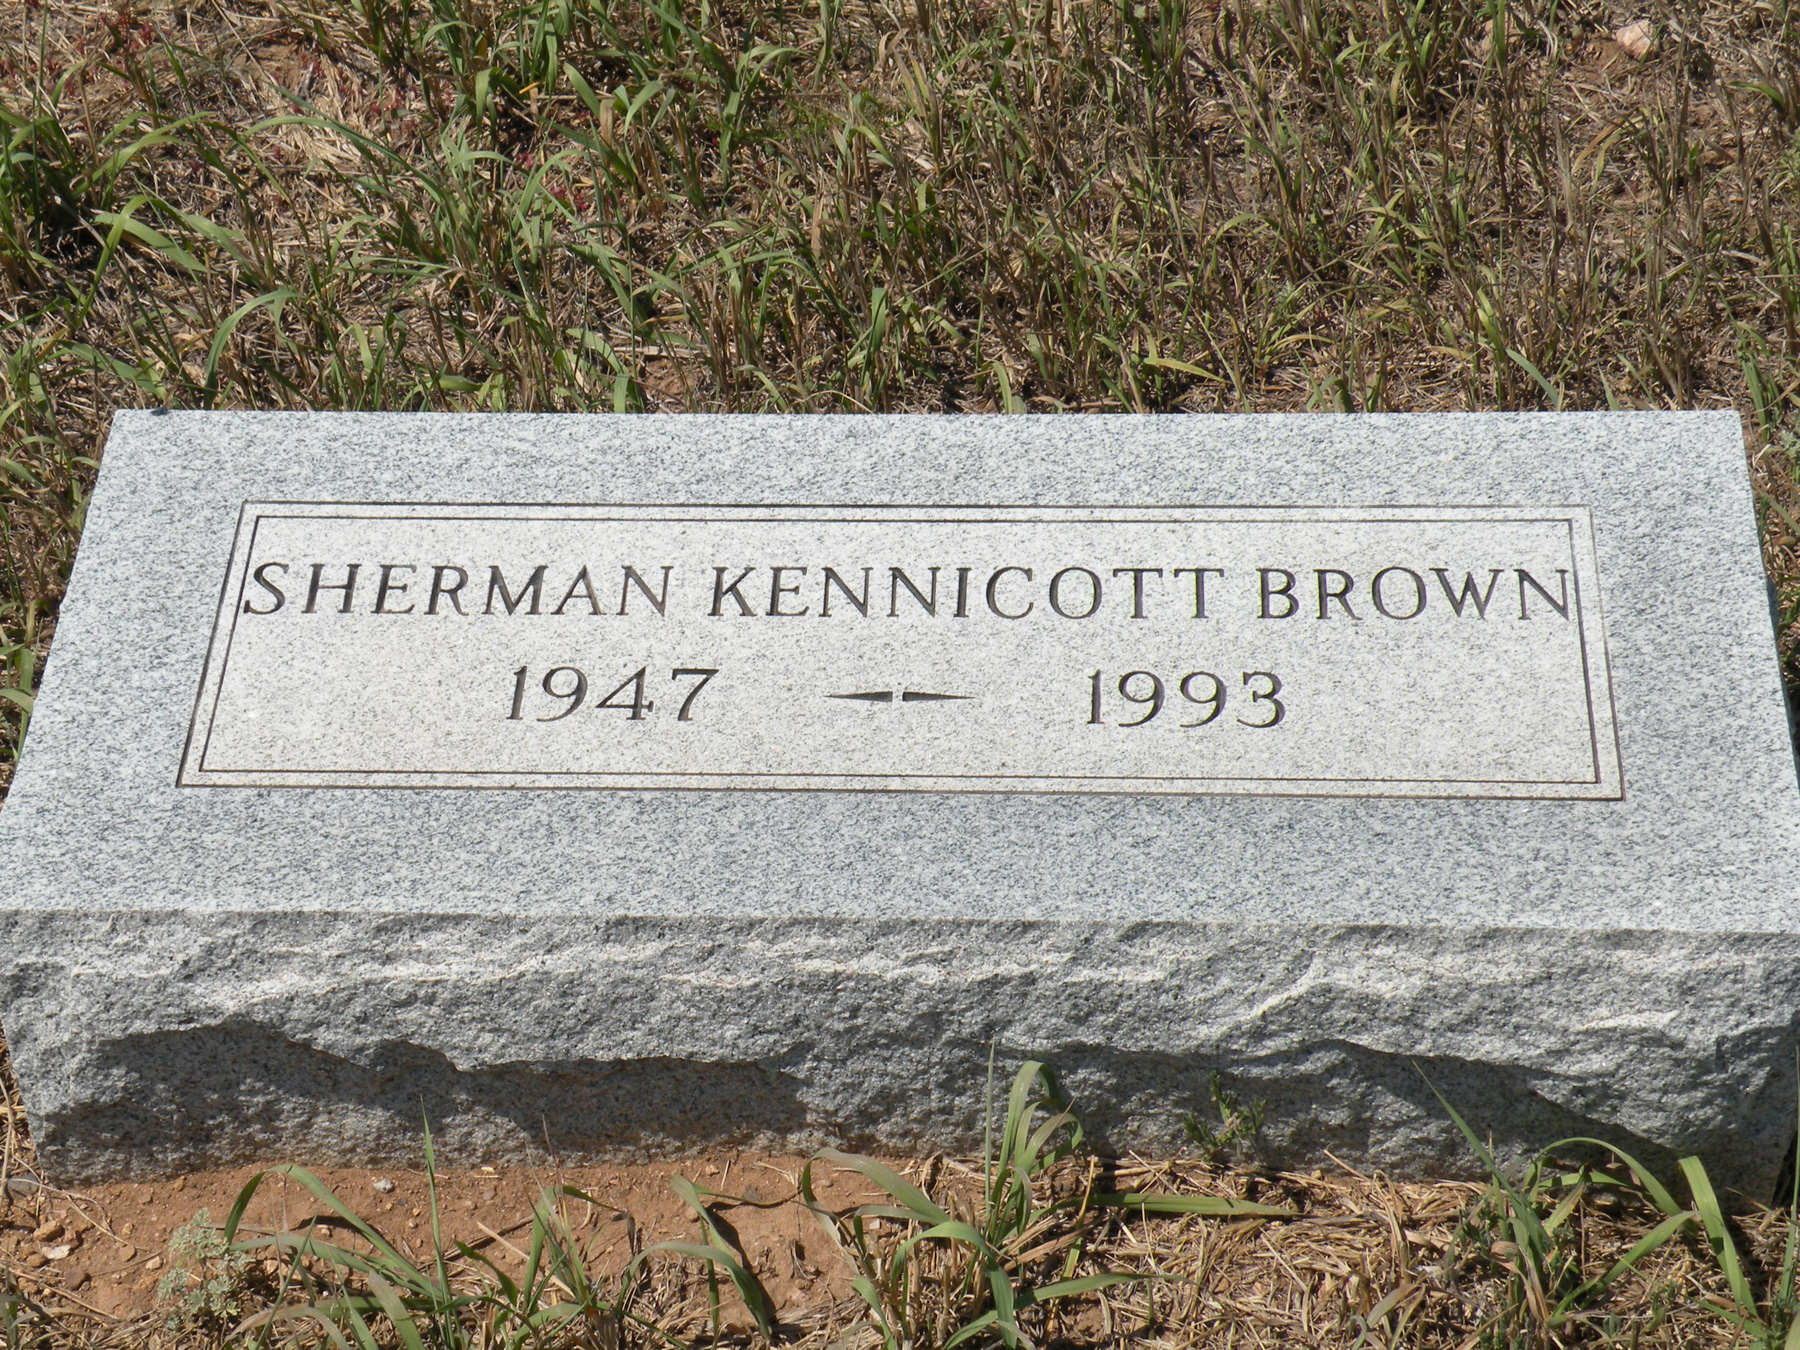 Sherman Kennicott Brown